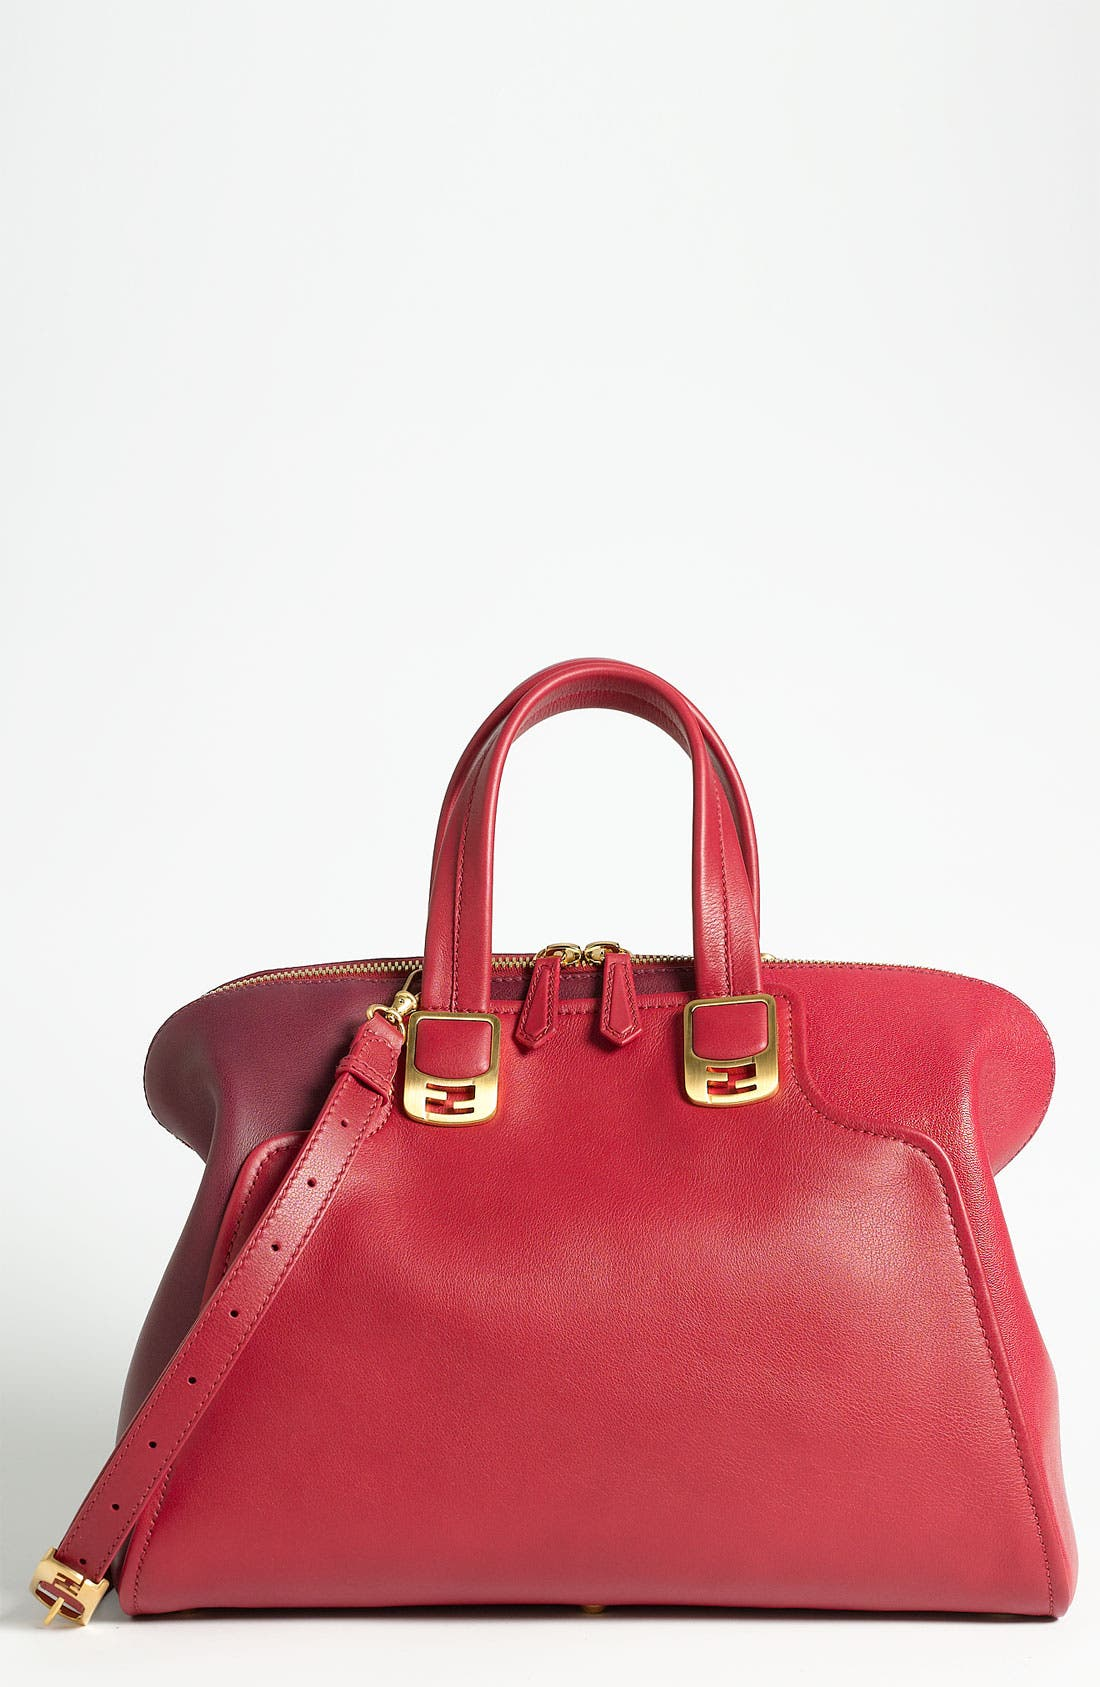 Main Image - Fendi 'Chameleon Colorblock' Leather Tote